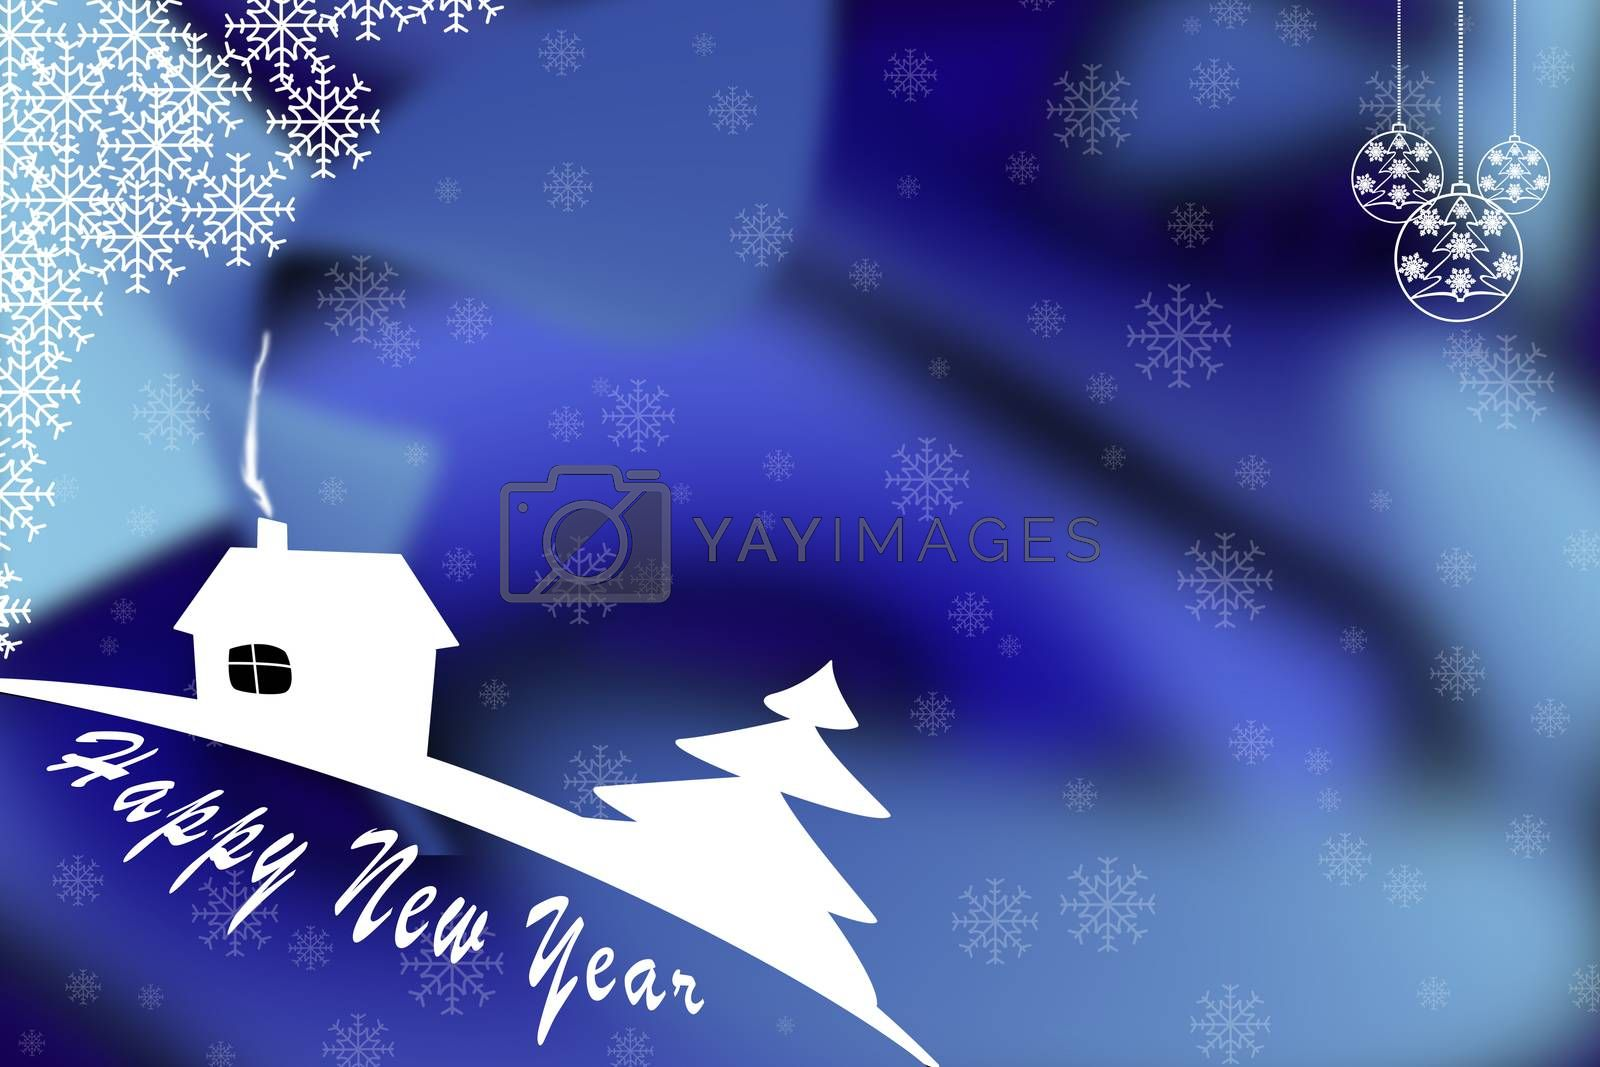 Illustration. New year greetings template on blue background with Christmas balls and snowflakes